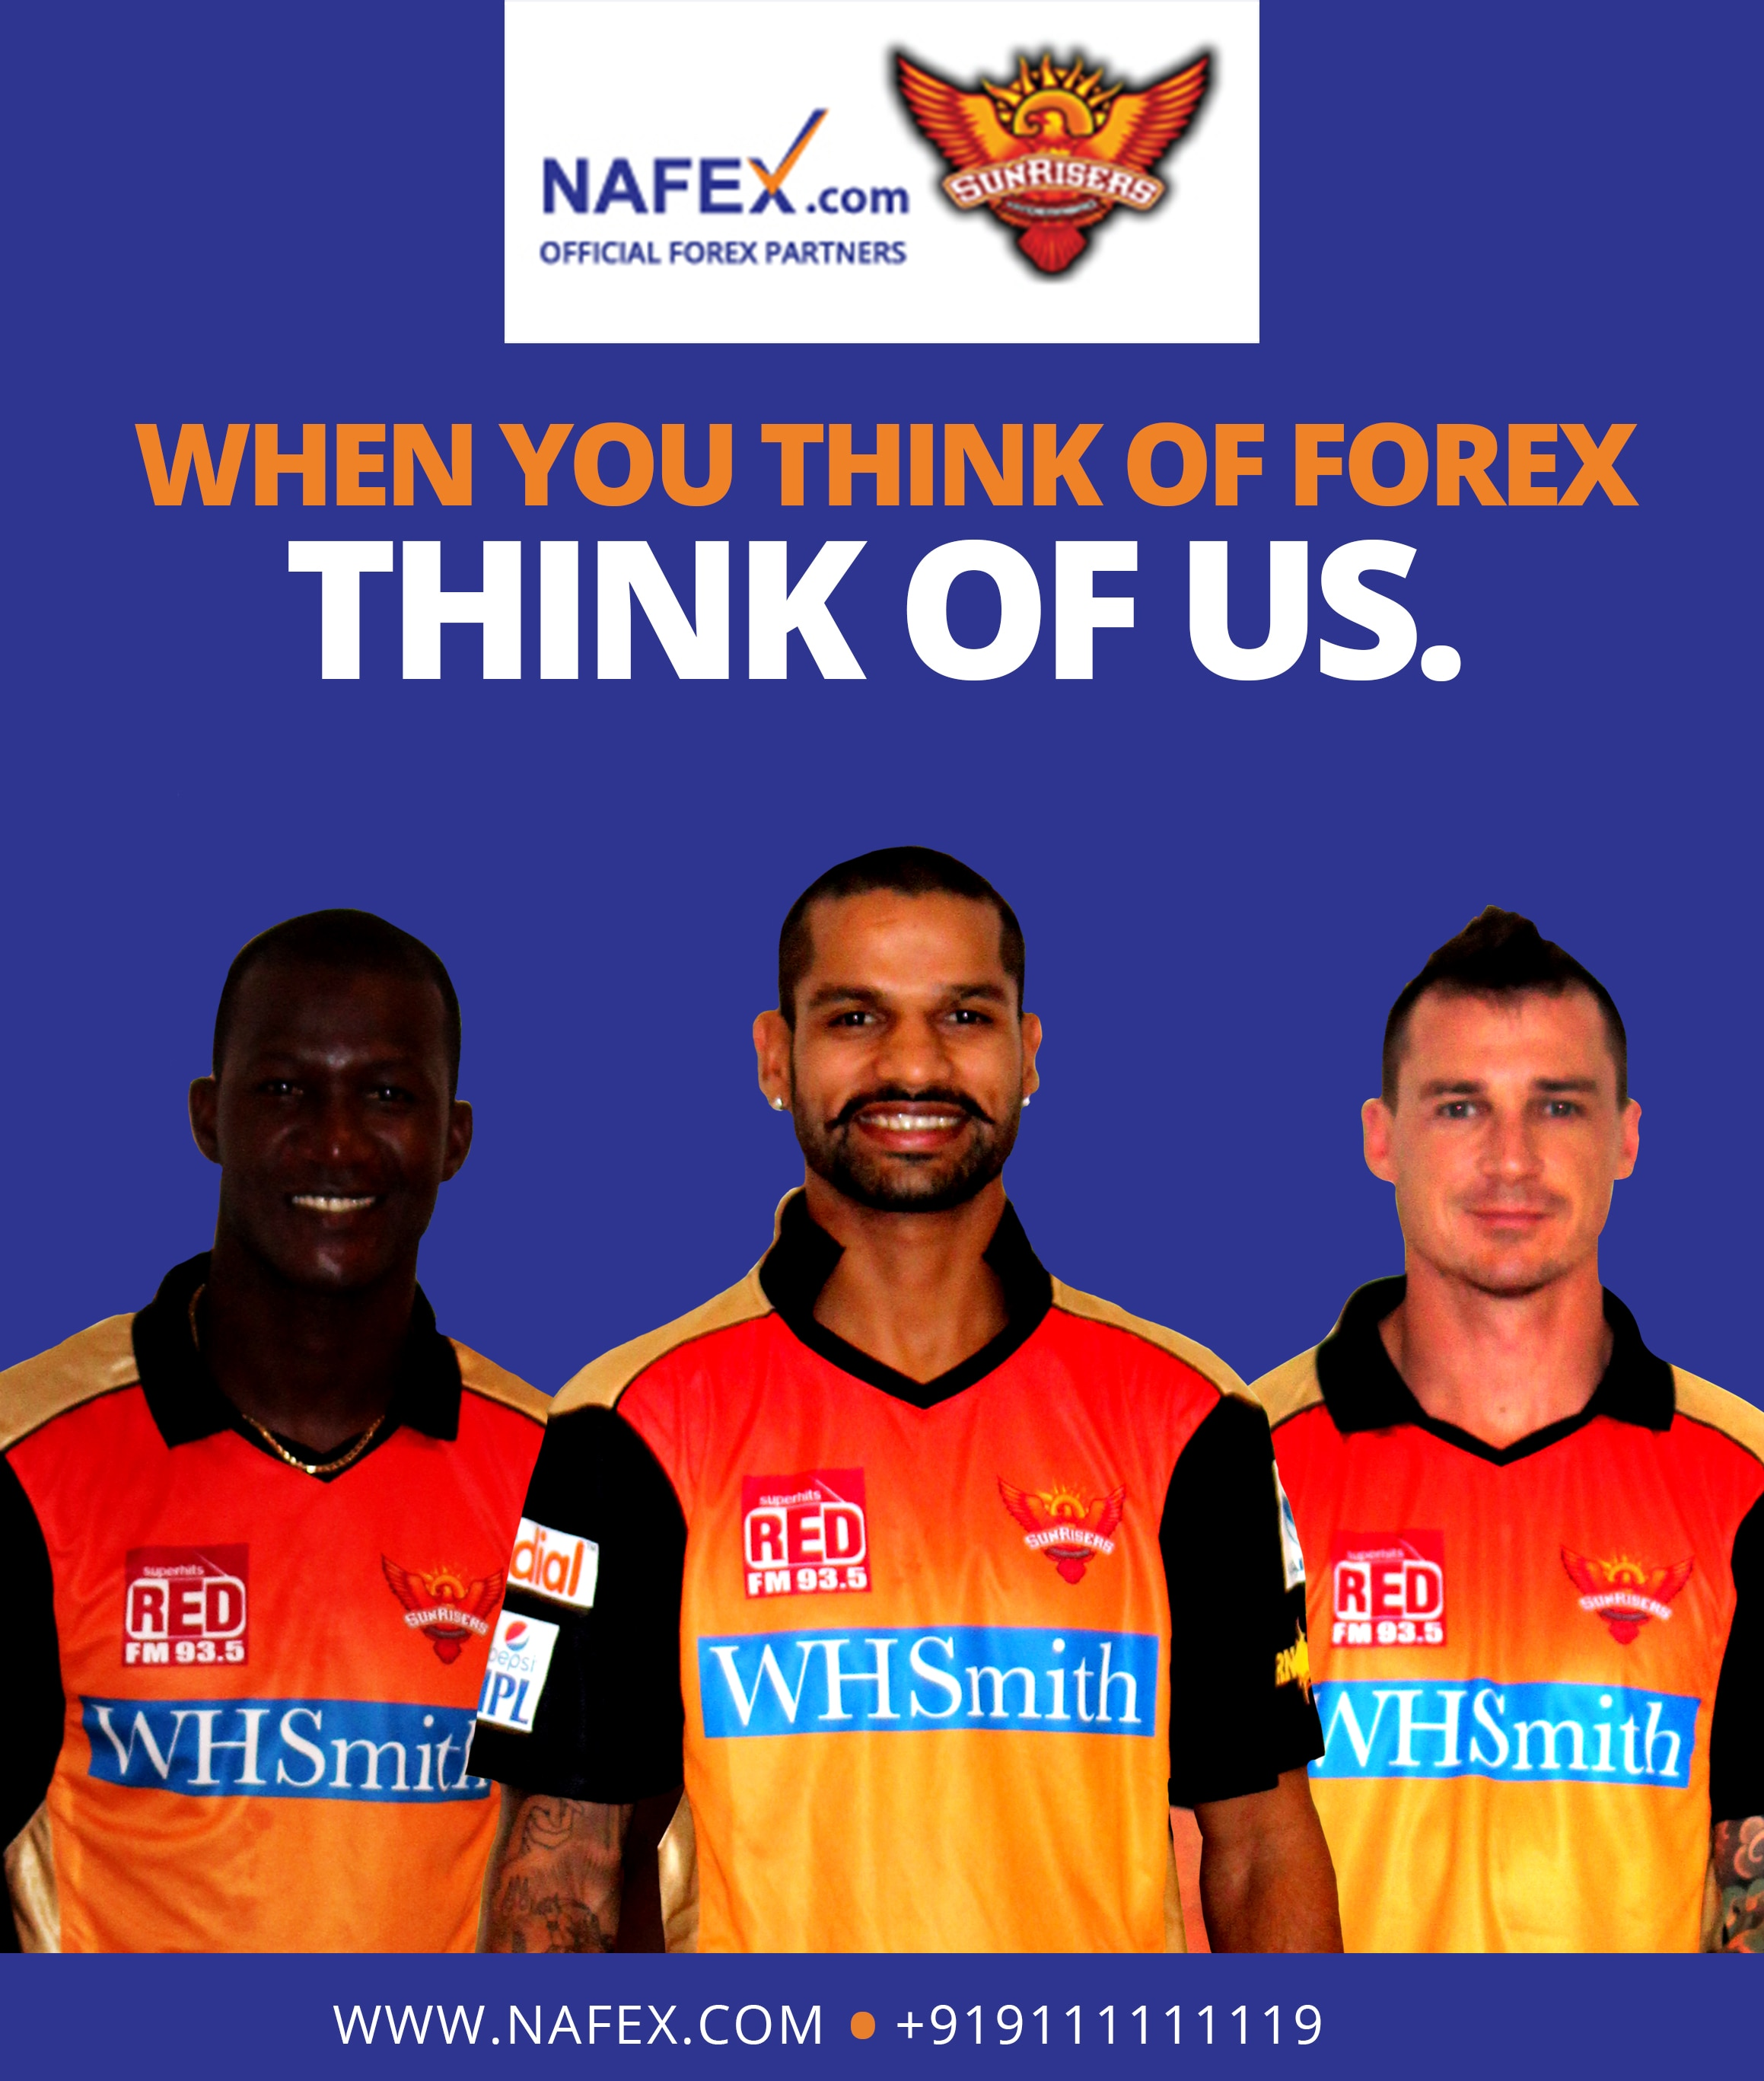 Nafex - Jodhpur Park Foreign Currency Exchange Dealers Agents Jodhpur Park, Online Travellers Cheque & Forex Prepaid Card